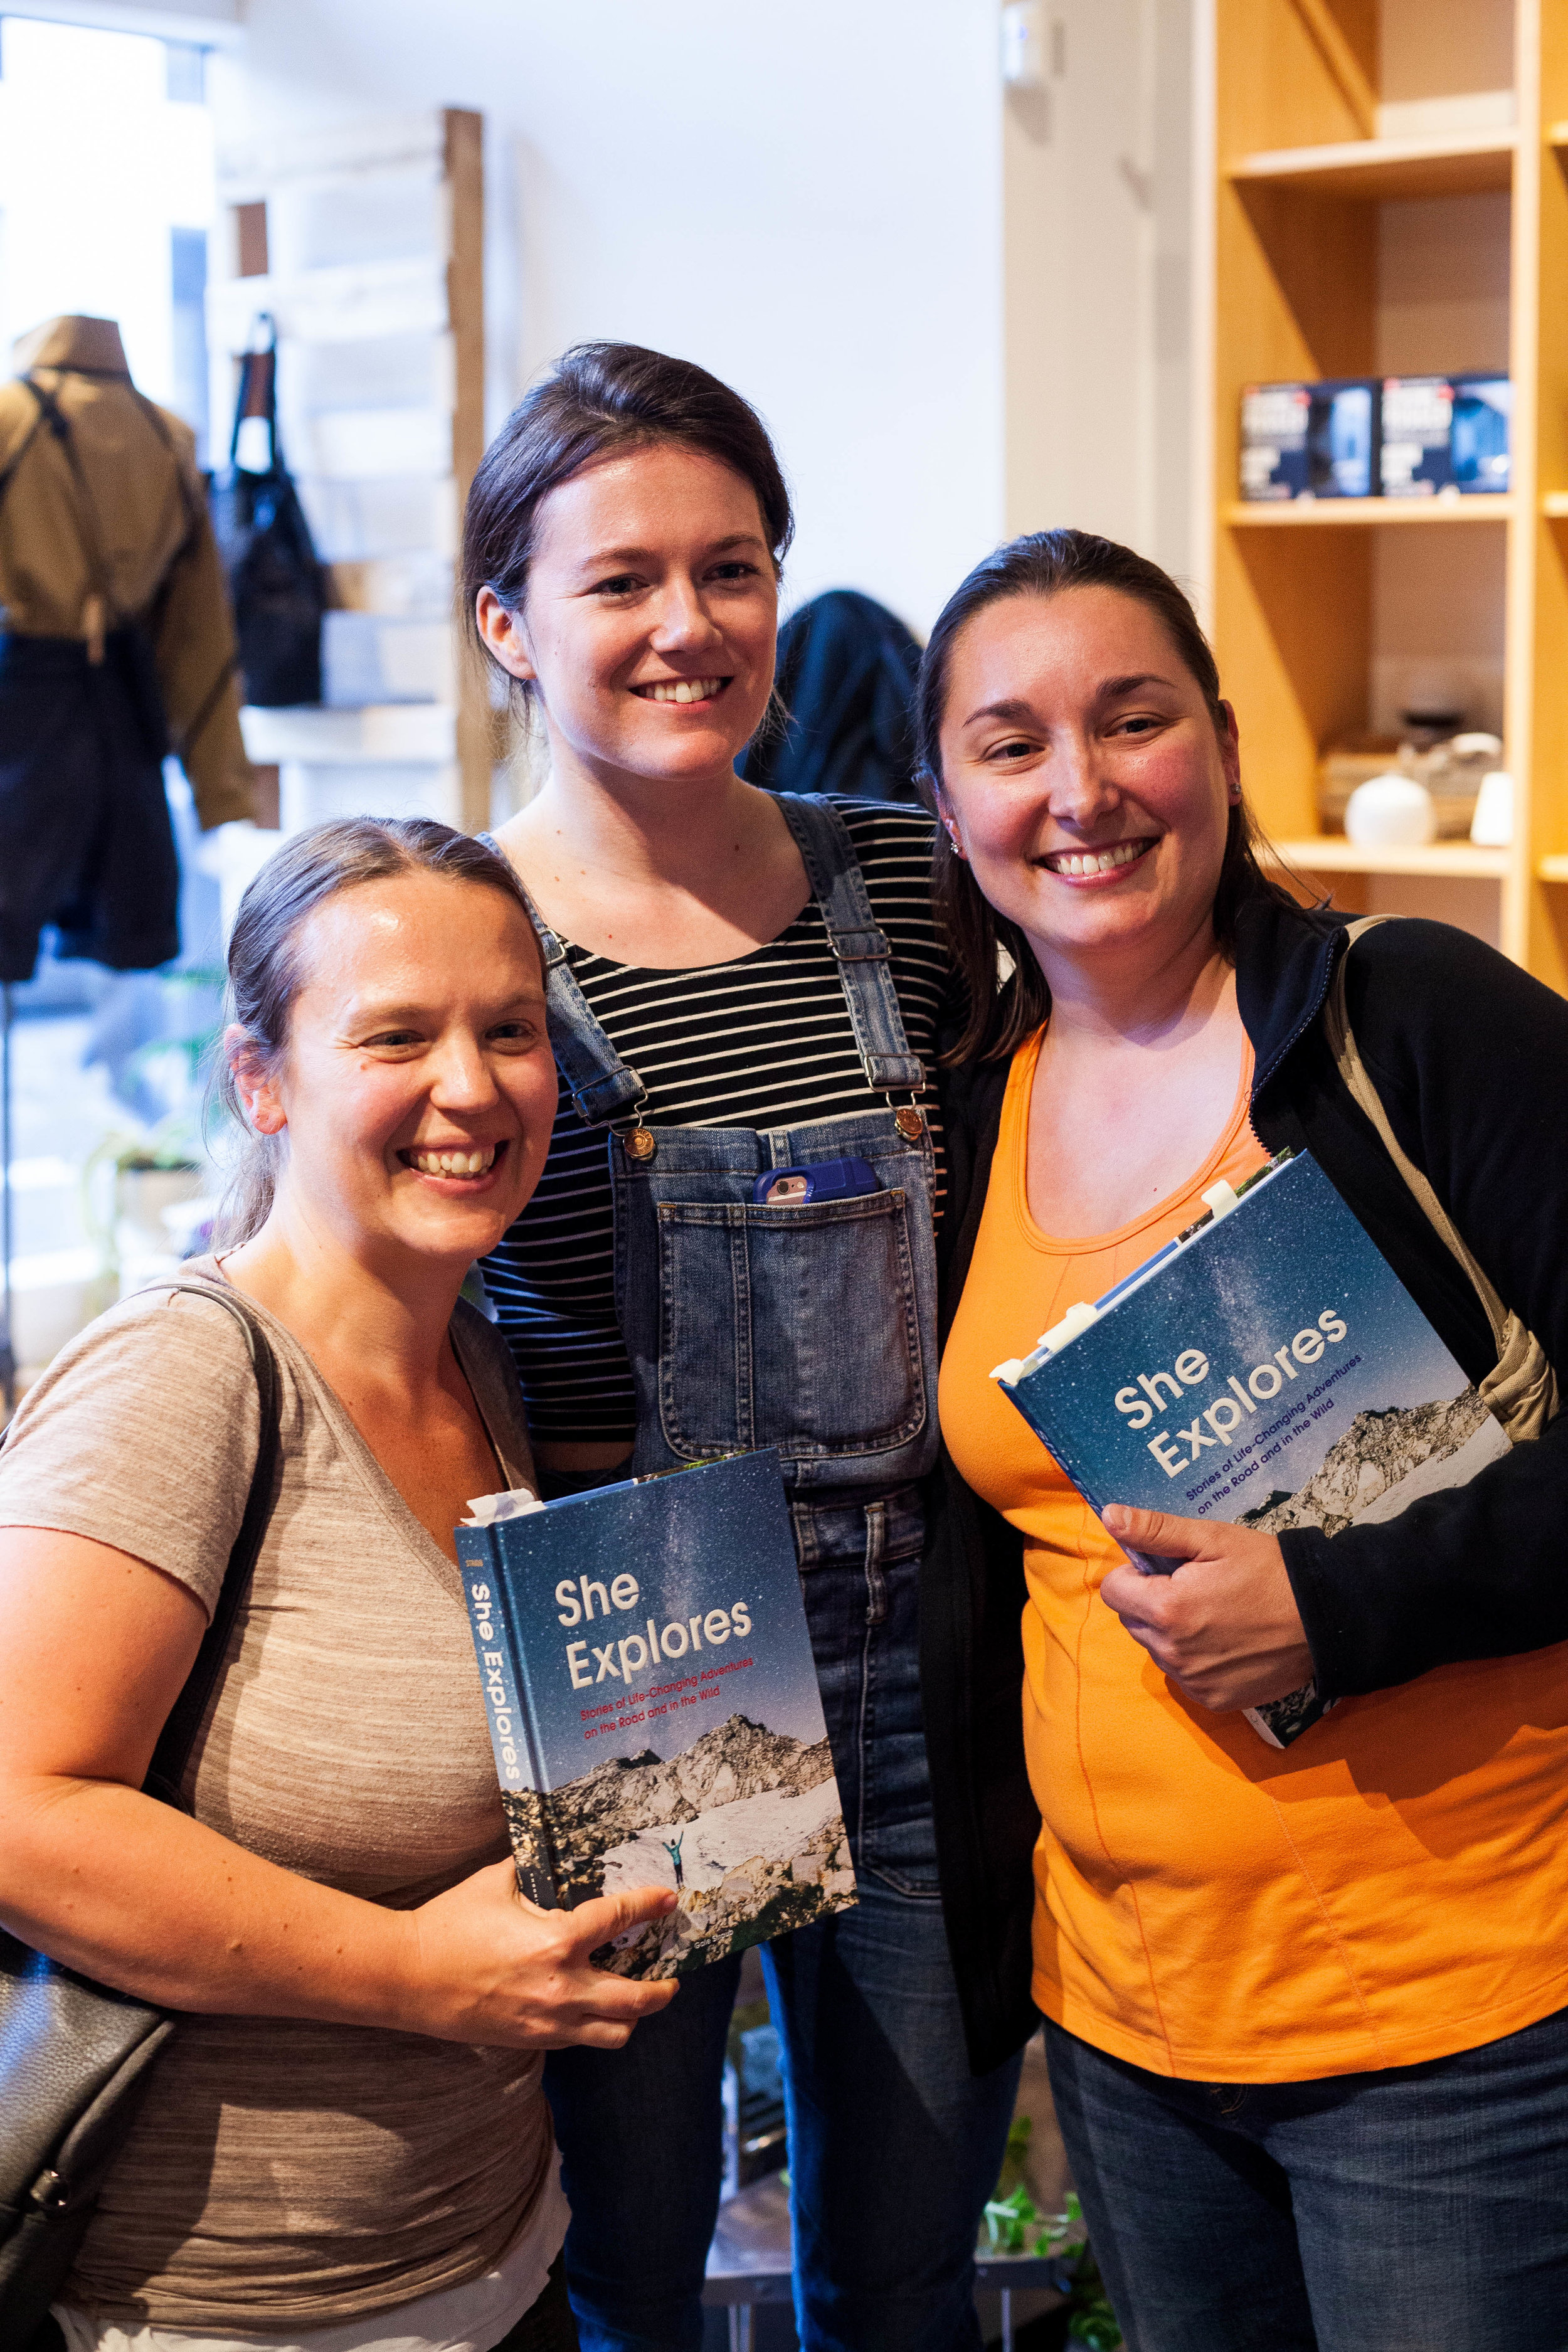 She Explores book launch at Snow Peak in Portland. Photo courtesy of Anna Brones.